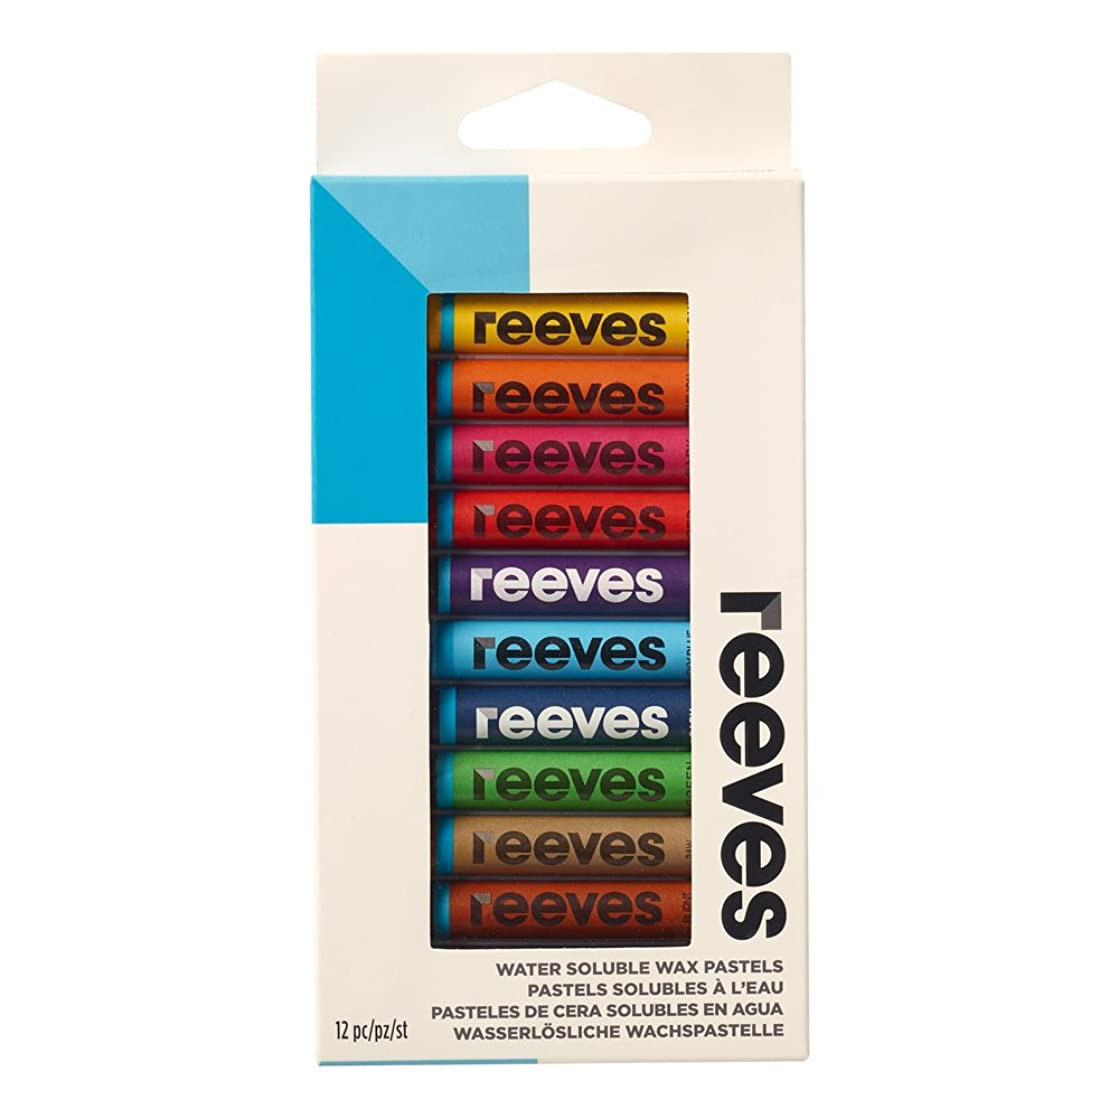 Winsor & Newton Reeves Water Soluble Wax Pastels - Set of 12,